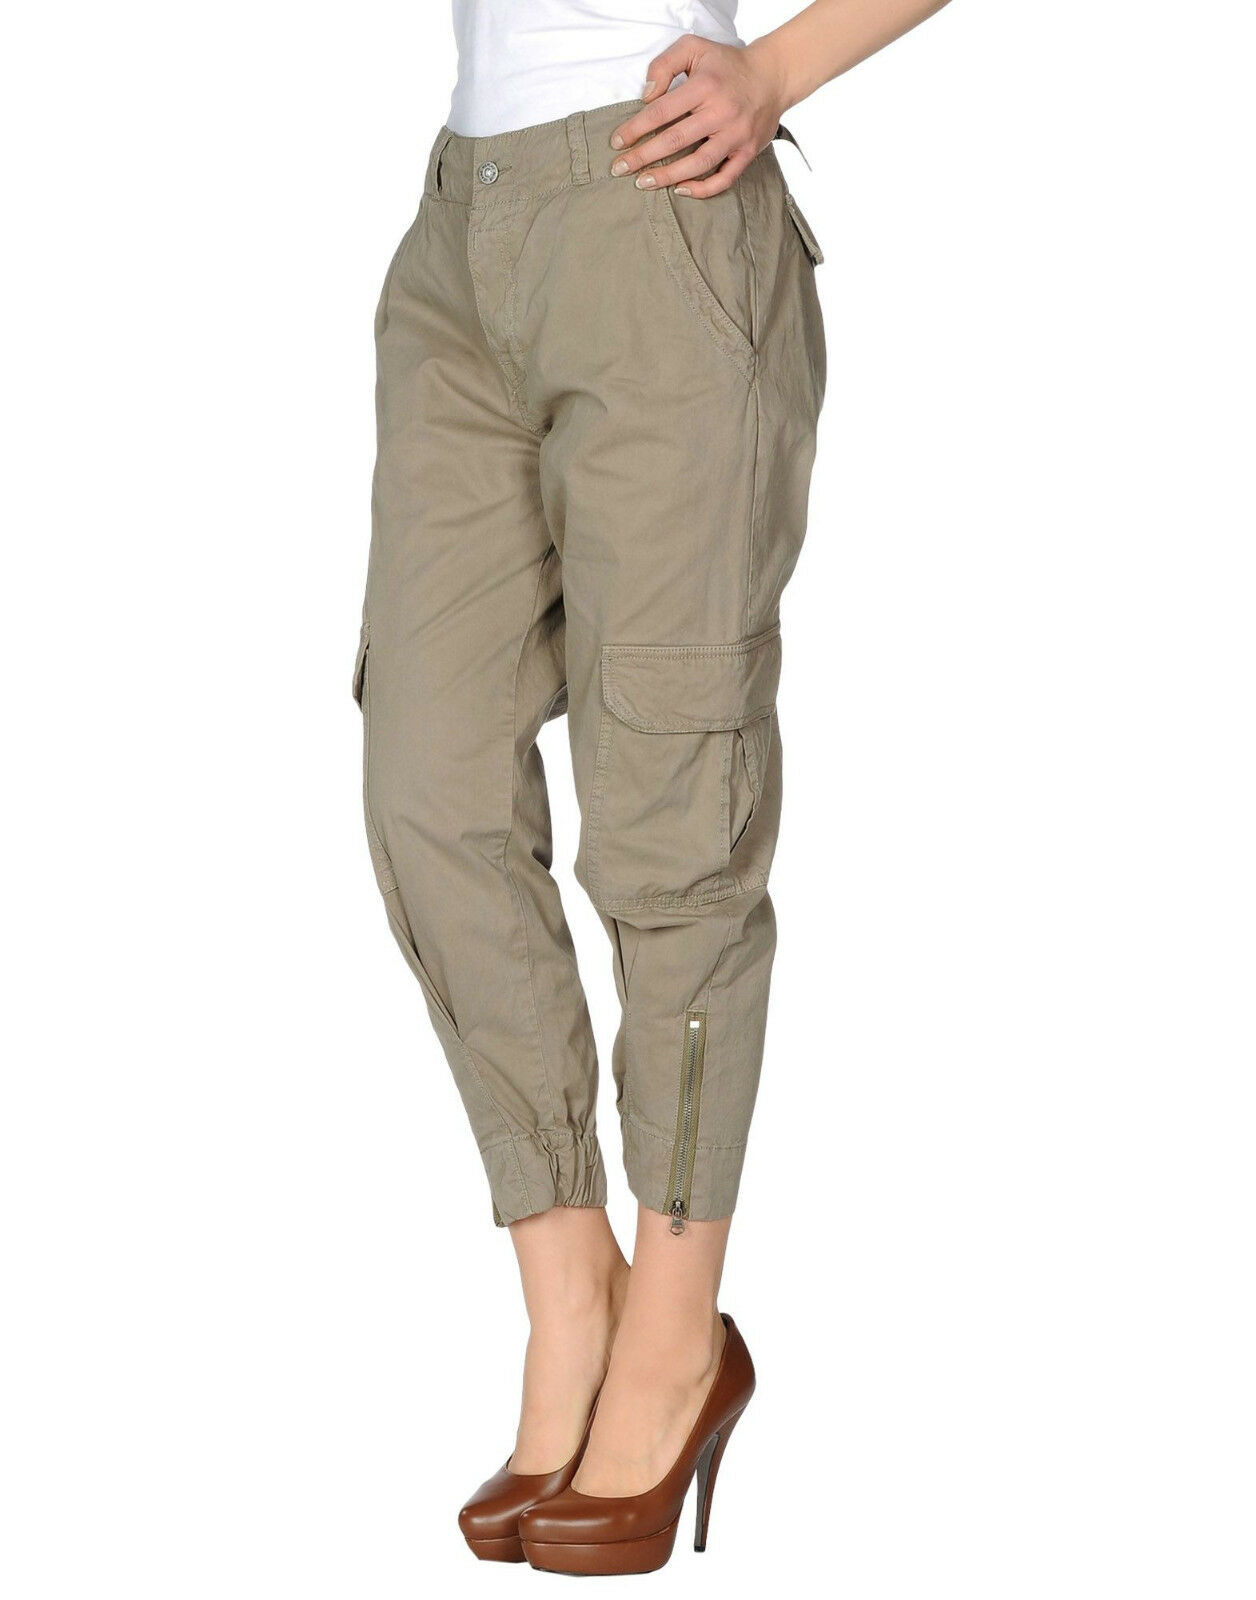 RRP  183 women's military KHAKI CARGO pants brand REPLAY Size W29 NEW TAGS